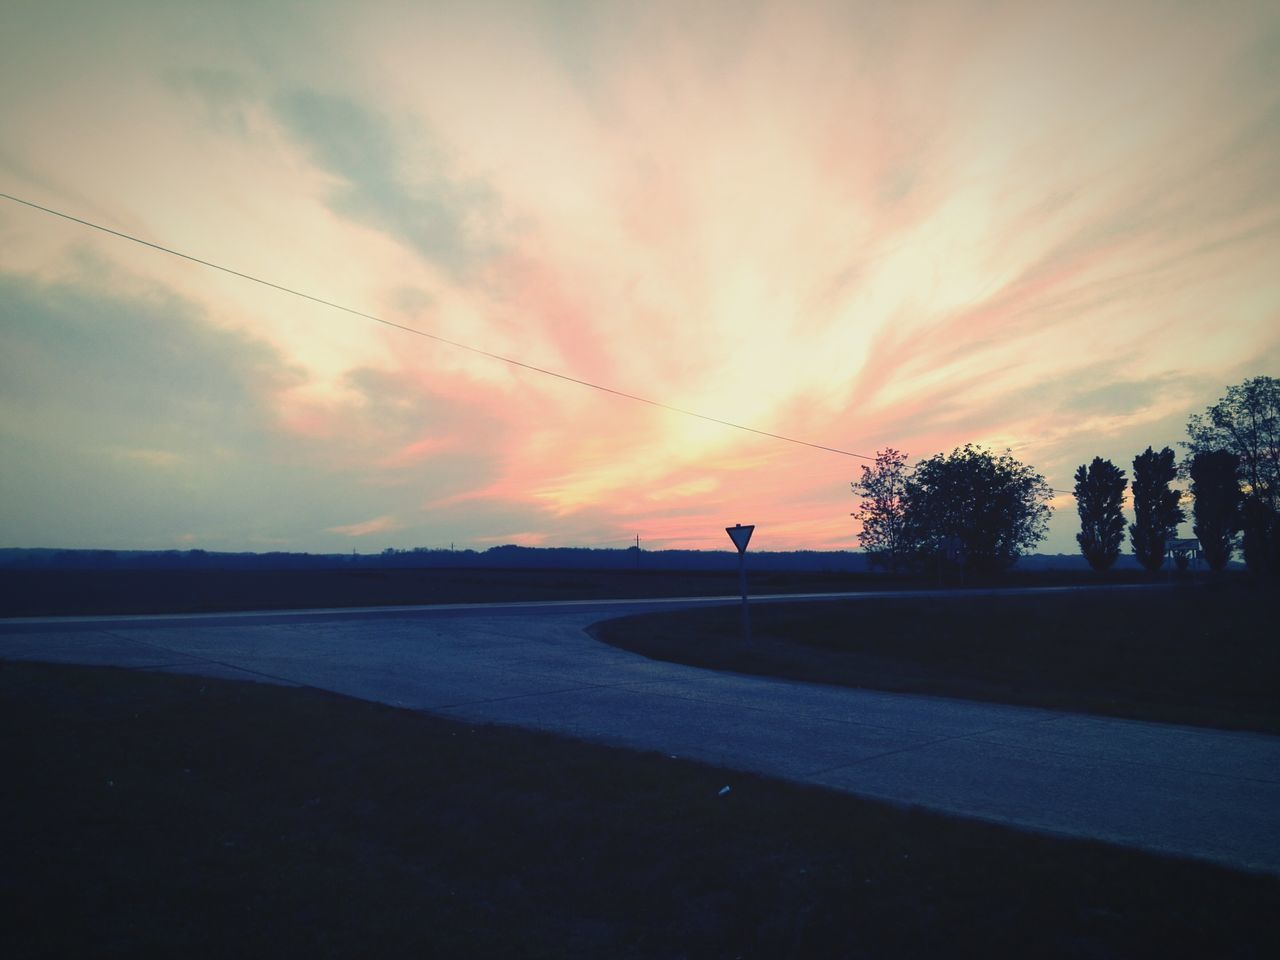 sunset, silhouette, tree, sky, nature, cloud - sky, scenics, outdoors, tranquil scene, beauty in nature, road, tranquility, real people, water, day